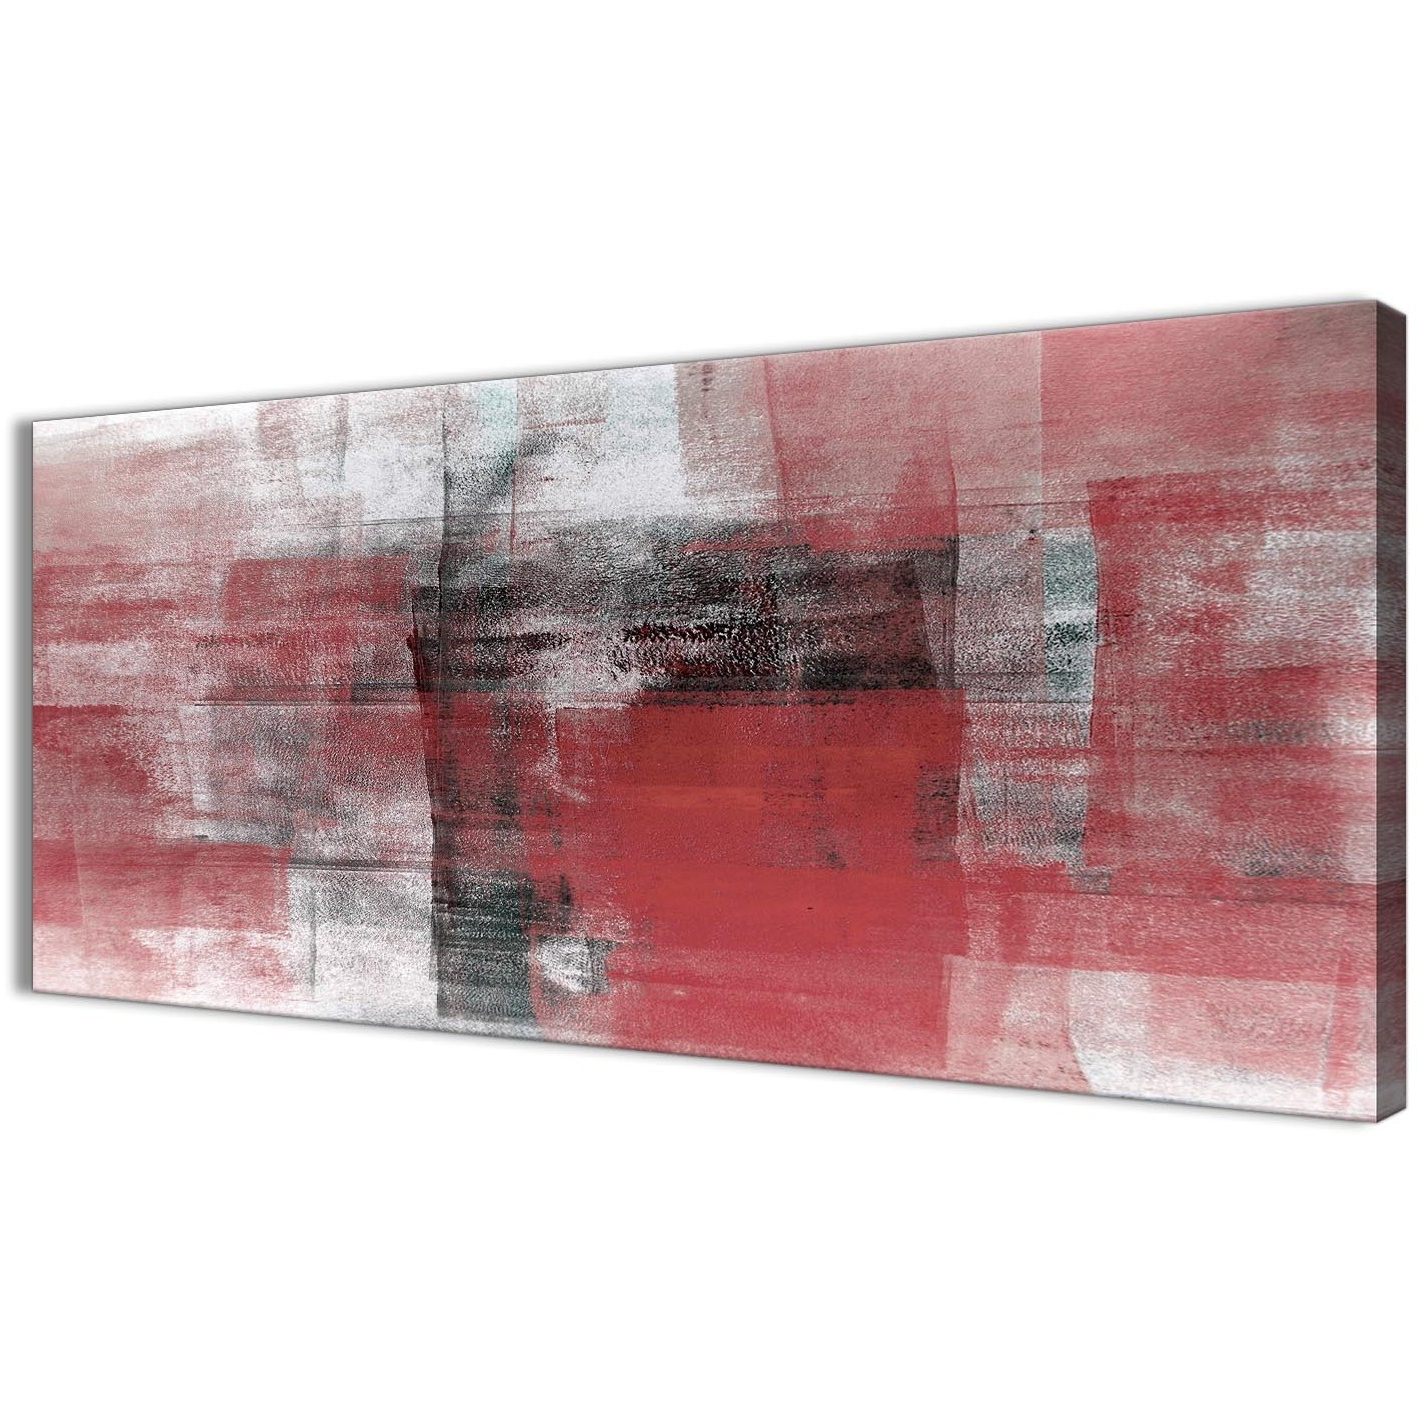 Most Up To Date Red Canvas Wall Art With Red Black White Painting Living Room Canvas Wall Art Accessories (View 2 of 15)